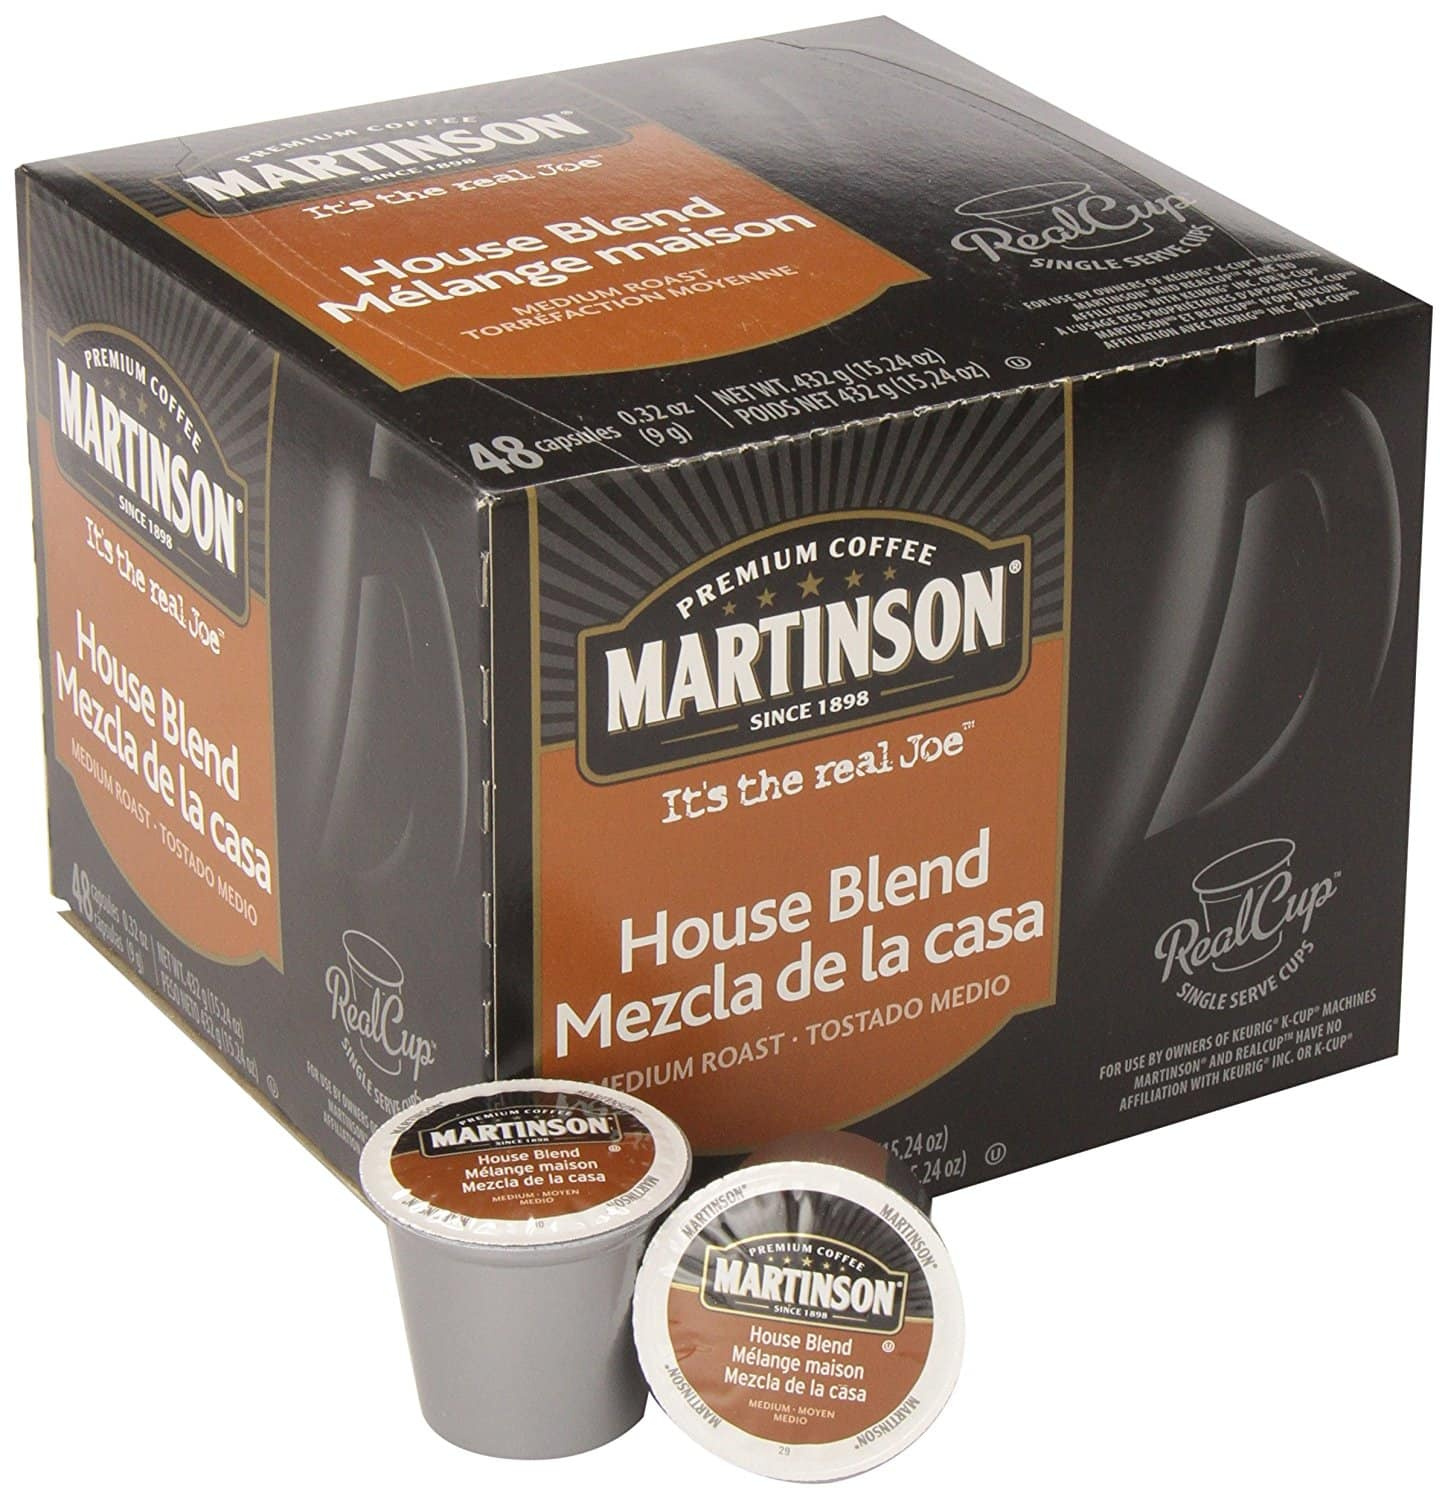 48-Pack Martinson Coffee Single Serve RealCup K-Cups (House Blend ...